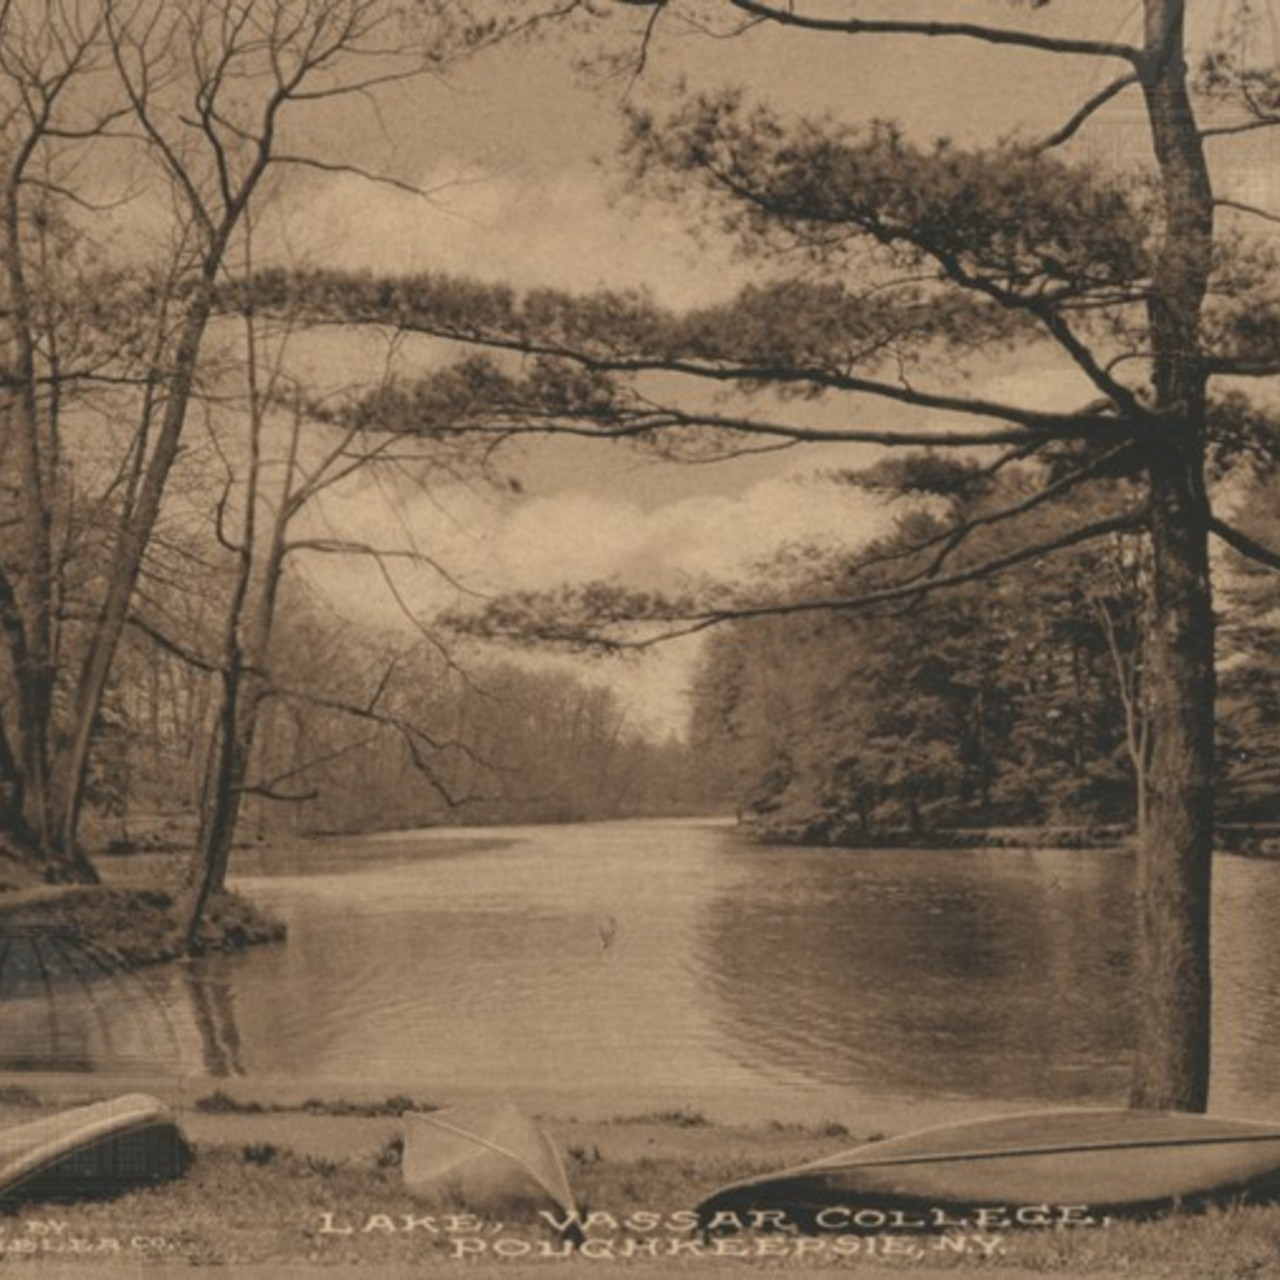 Lake, Vassar College